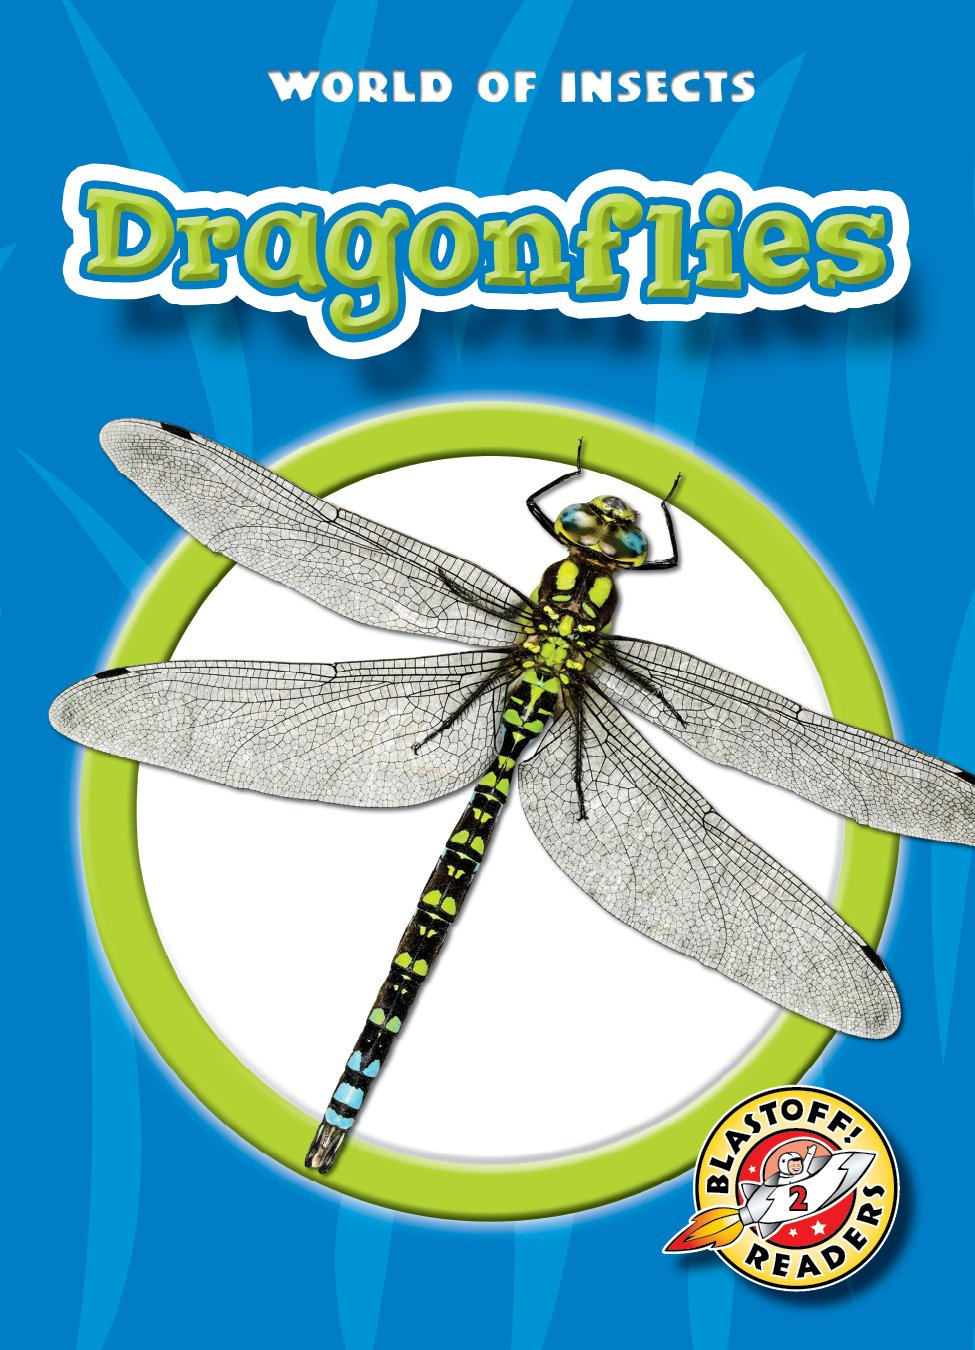 Download Dragonflies (Paperback) (Blastoff Readers: World of Insects)) (World of Insects: Blastoff Readers, Level 2) ebook